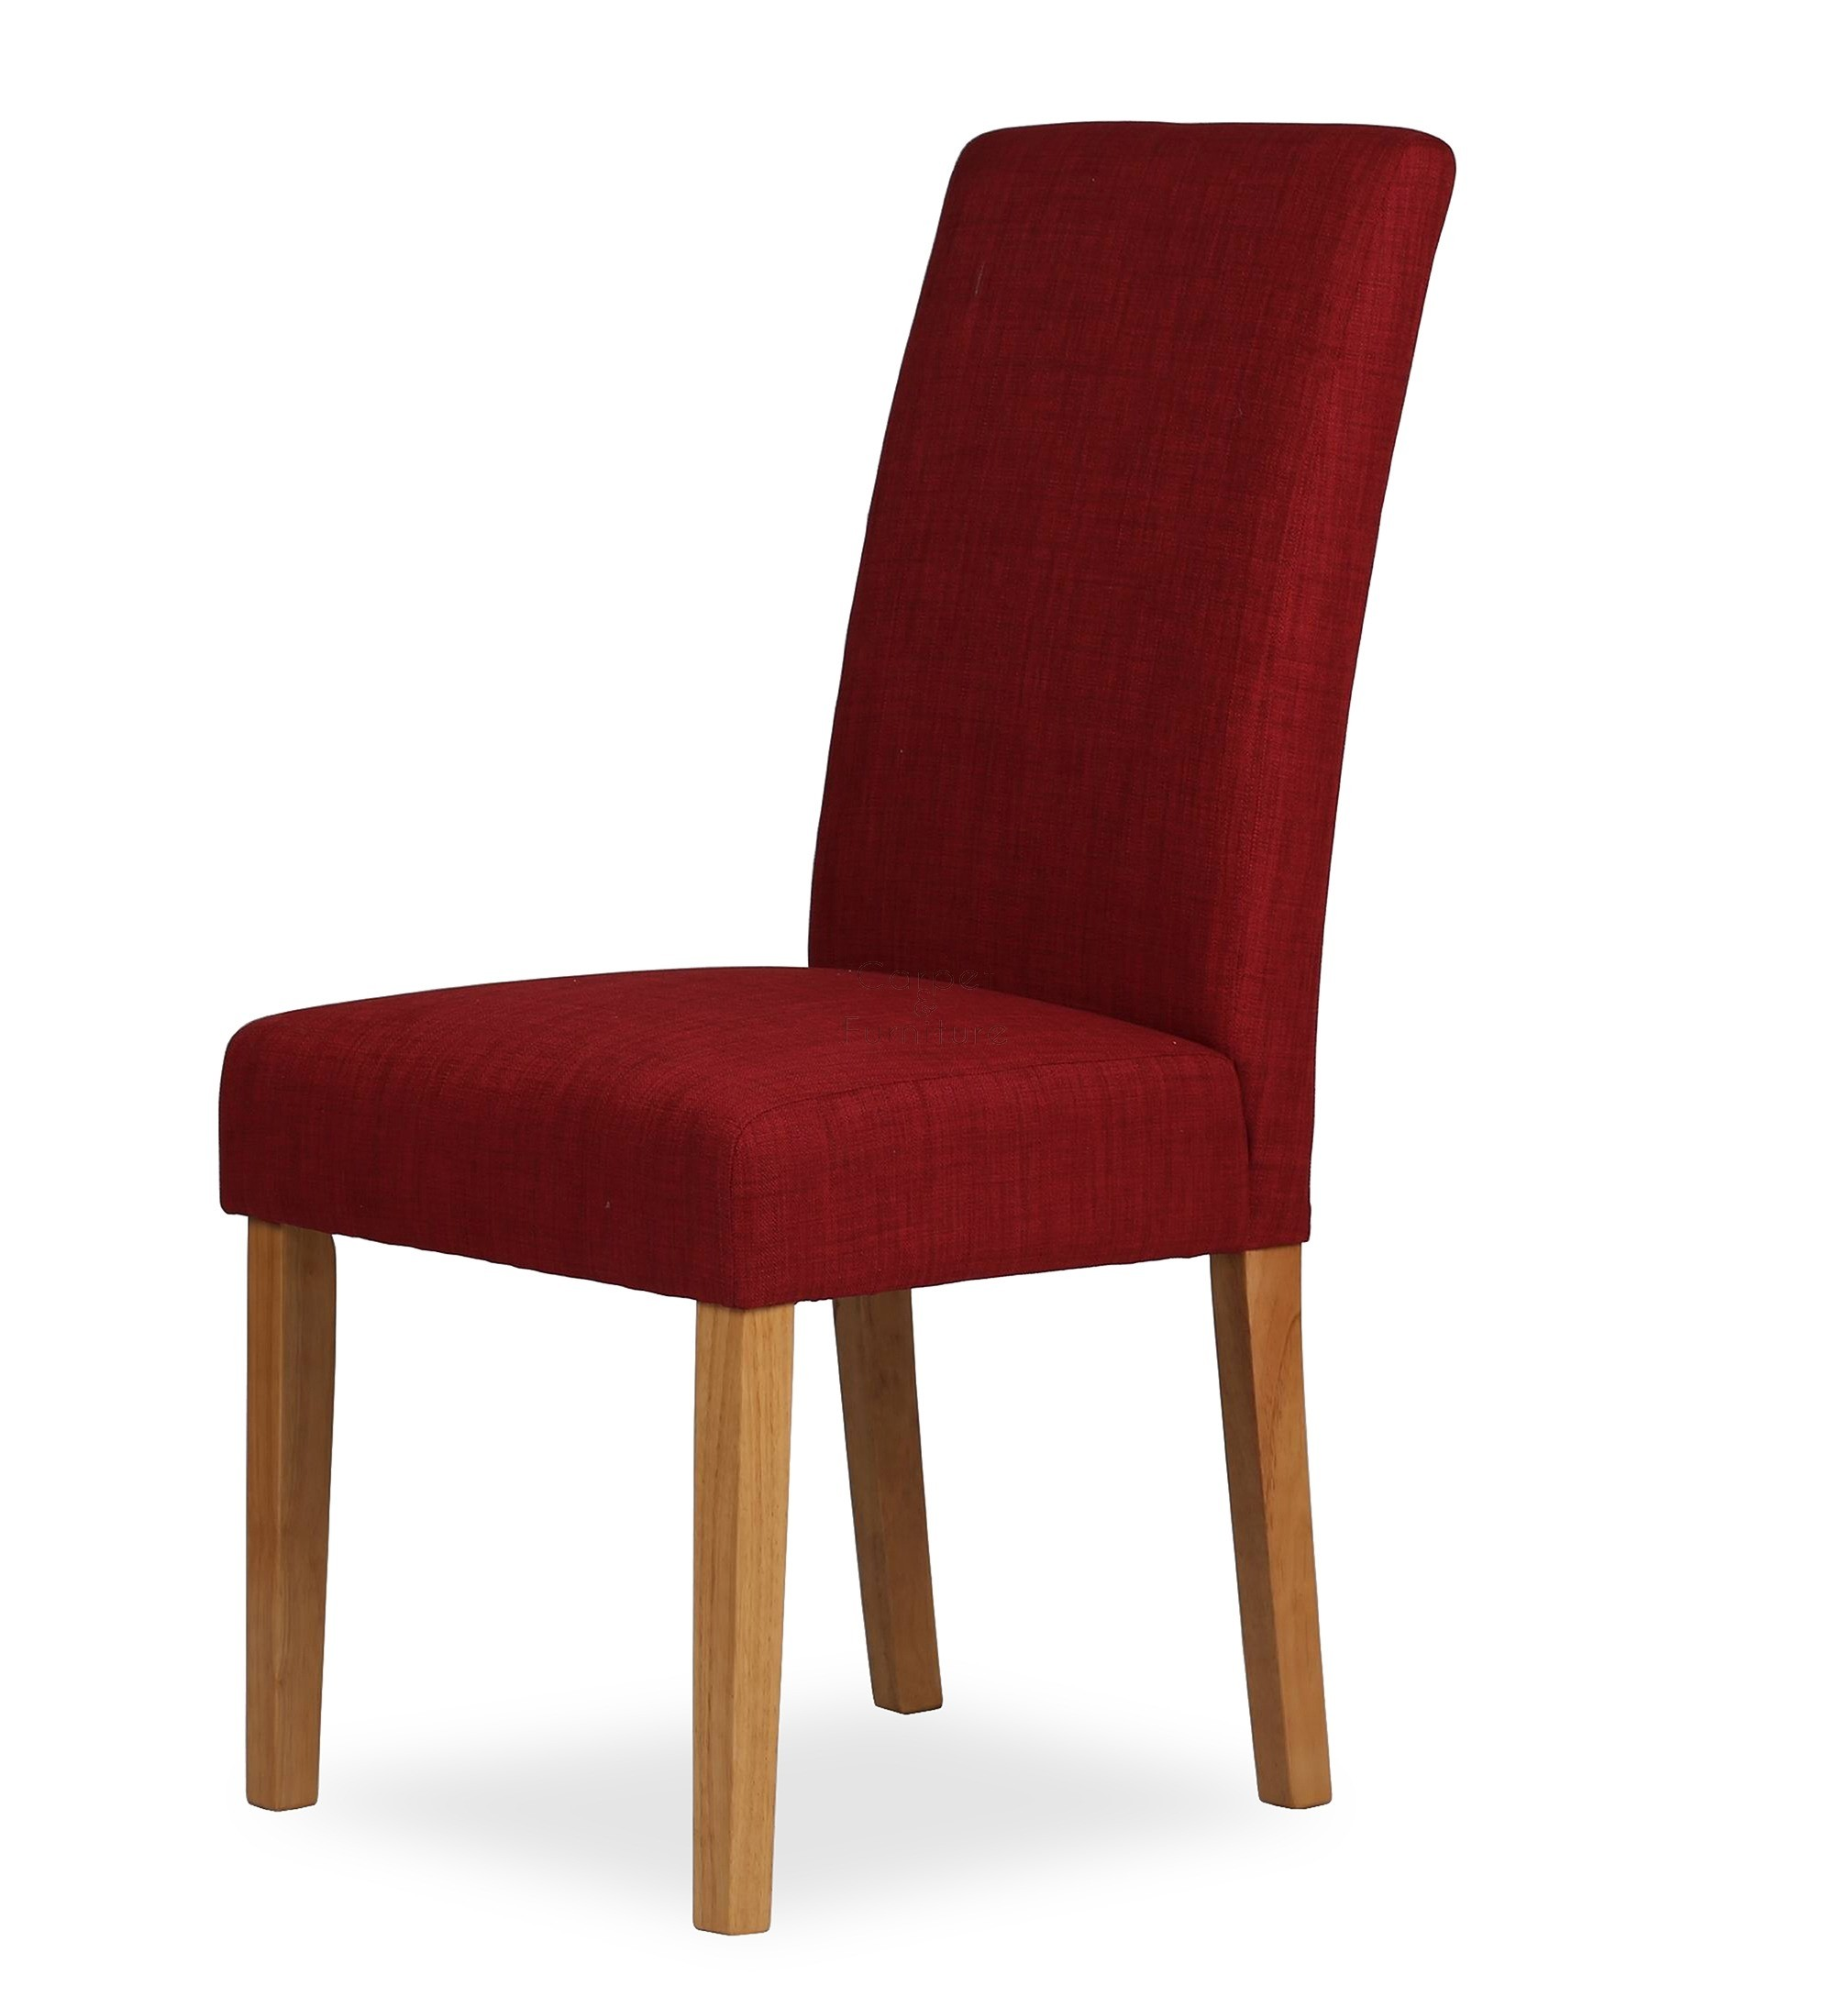 Red Upholstered Dining Chairs Upholstered Dining Chair Claret Red